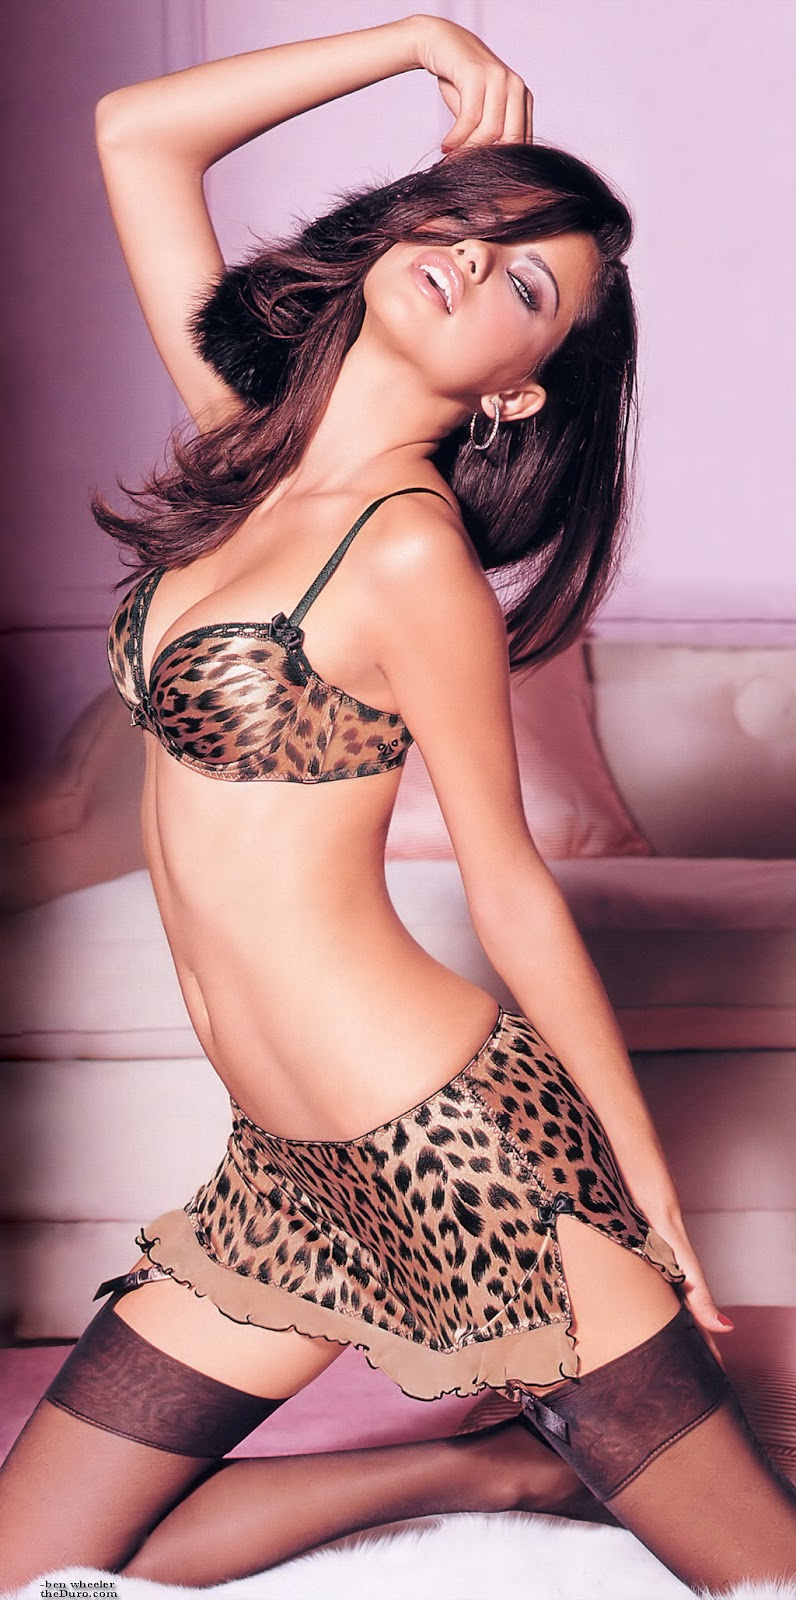 PLUS-Adriana-Lima-Cheetah.jpg